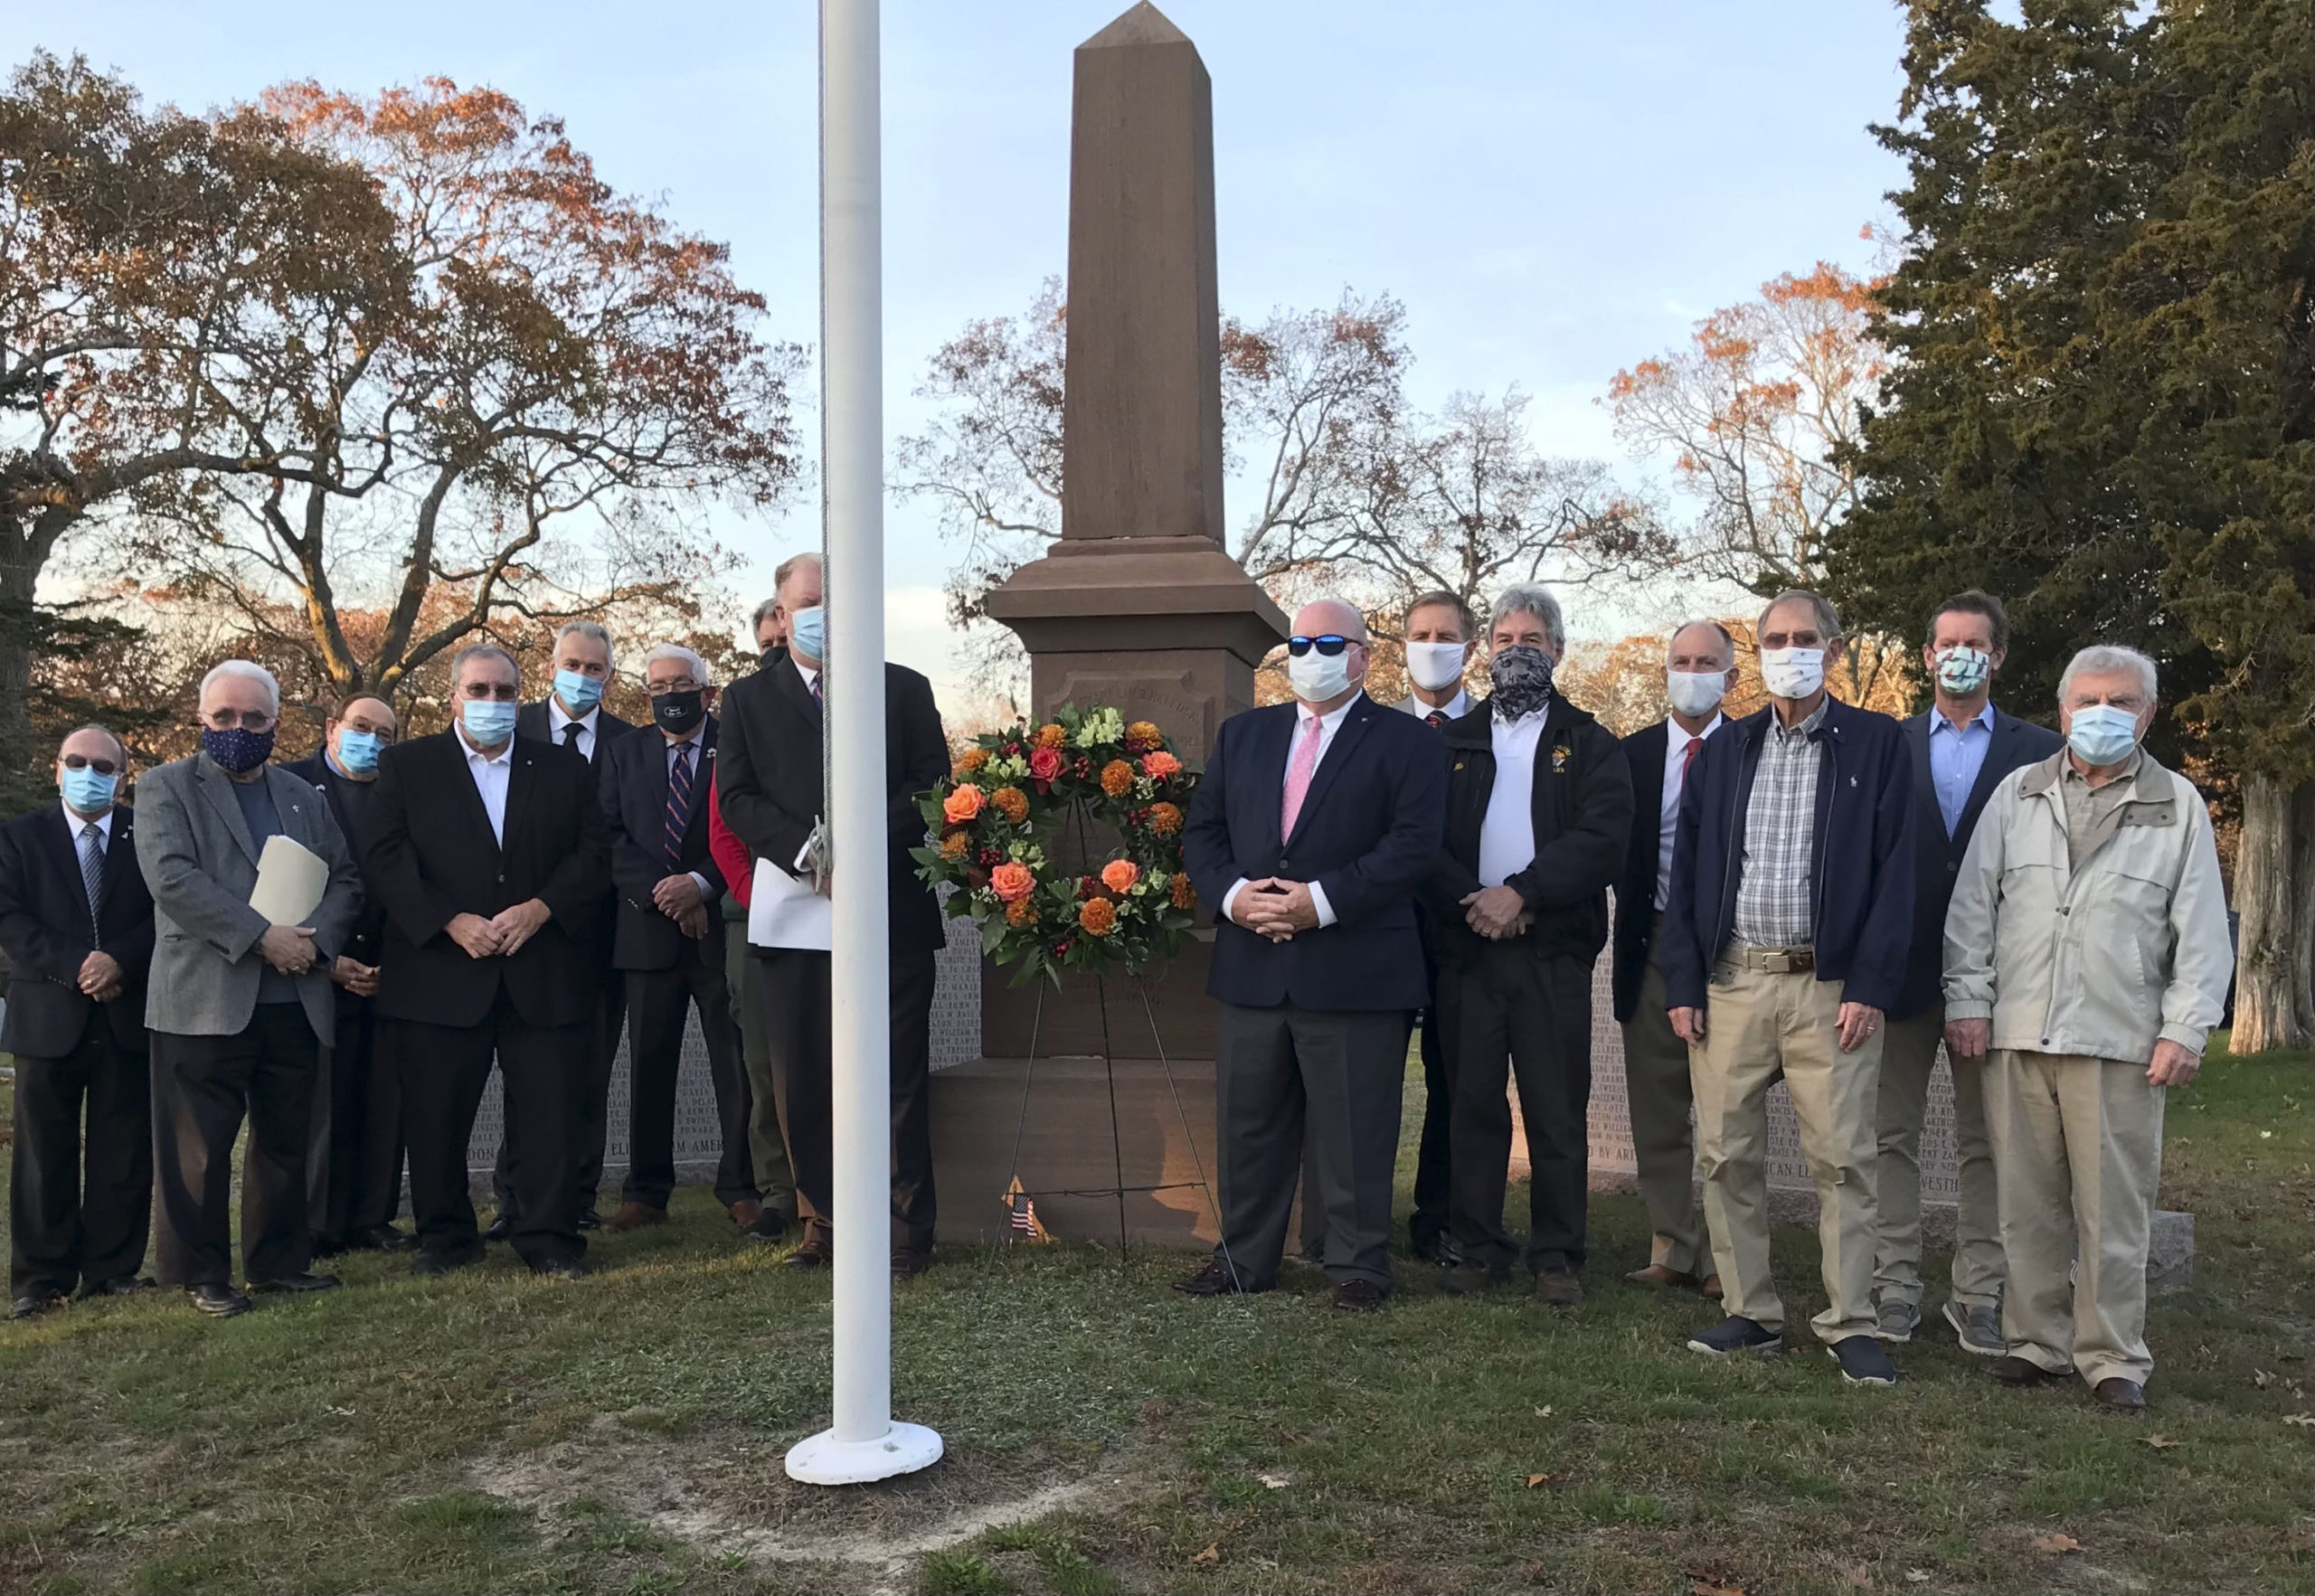 The Knights of Columbus #7423 displayed a wreath in front of the Veterans Memorial at the Westhampton Cemetery in honor of Veterans Day.